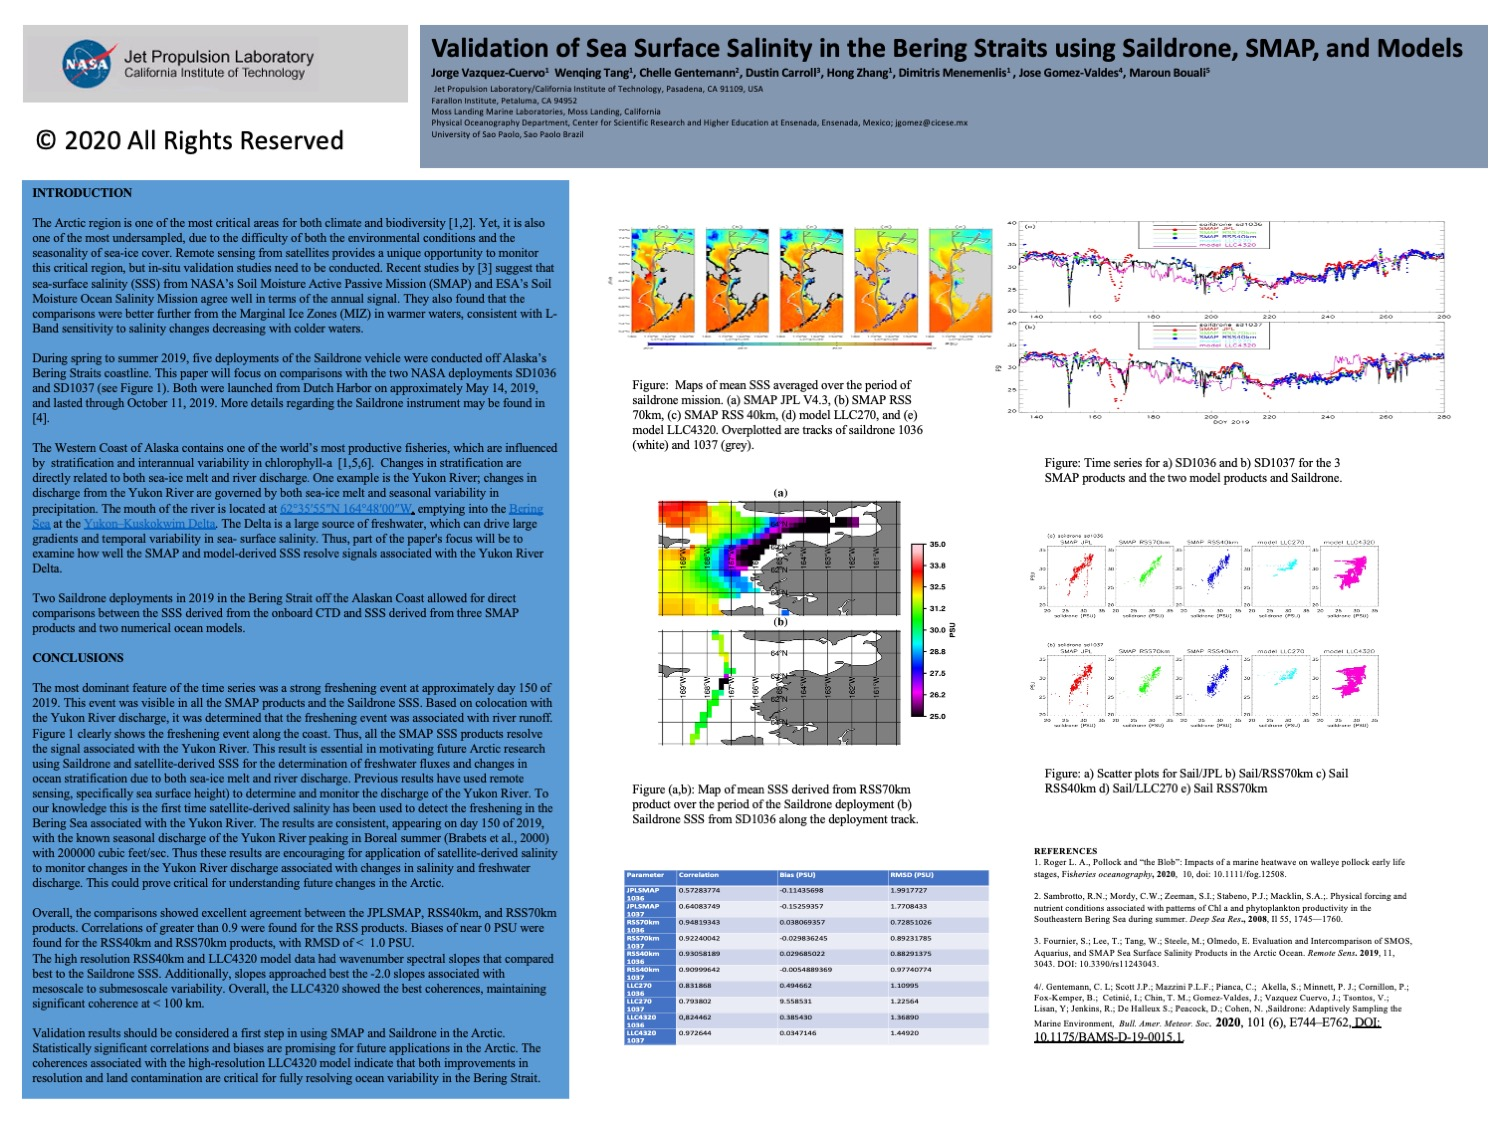 Validation of Sea Surface Salinity in the Bering Straits using Saildrone, SMAP, and Models